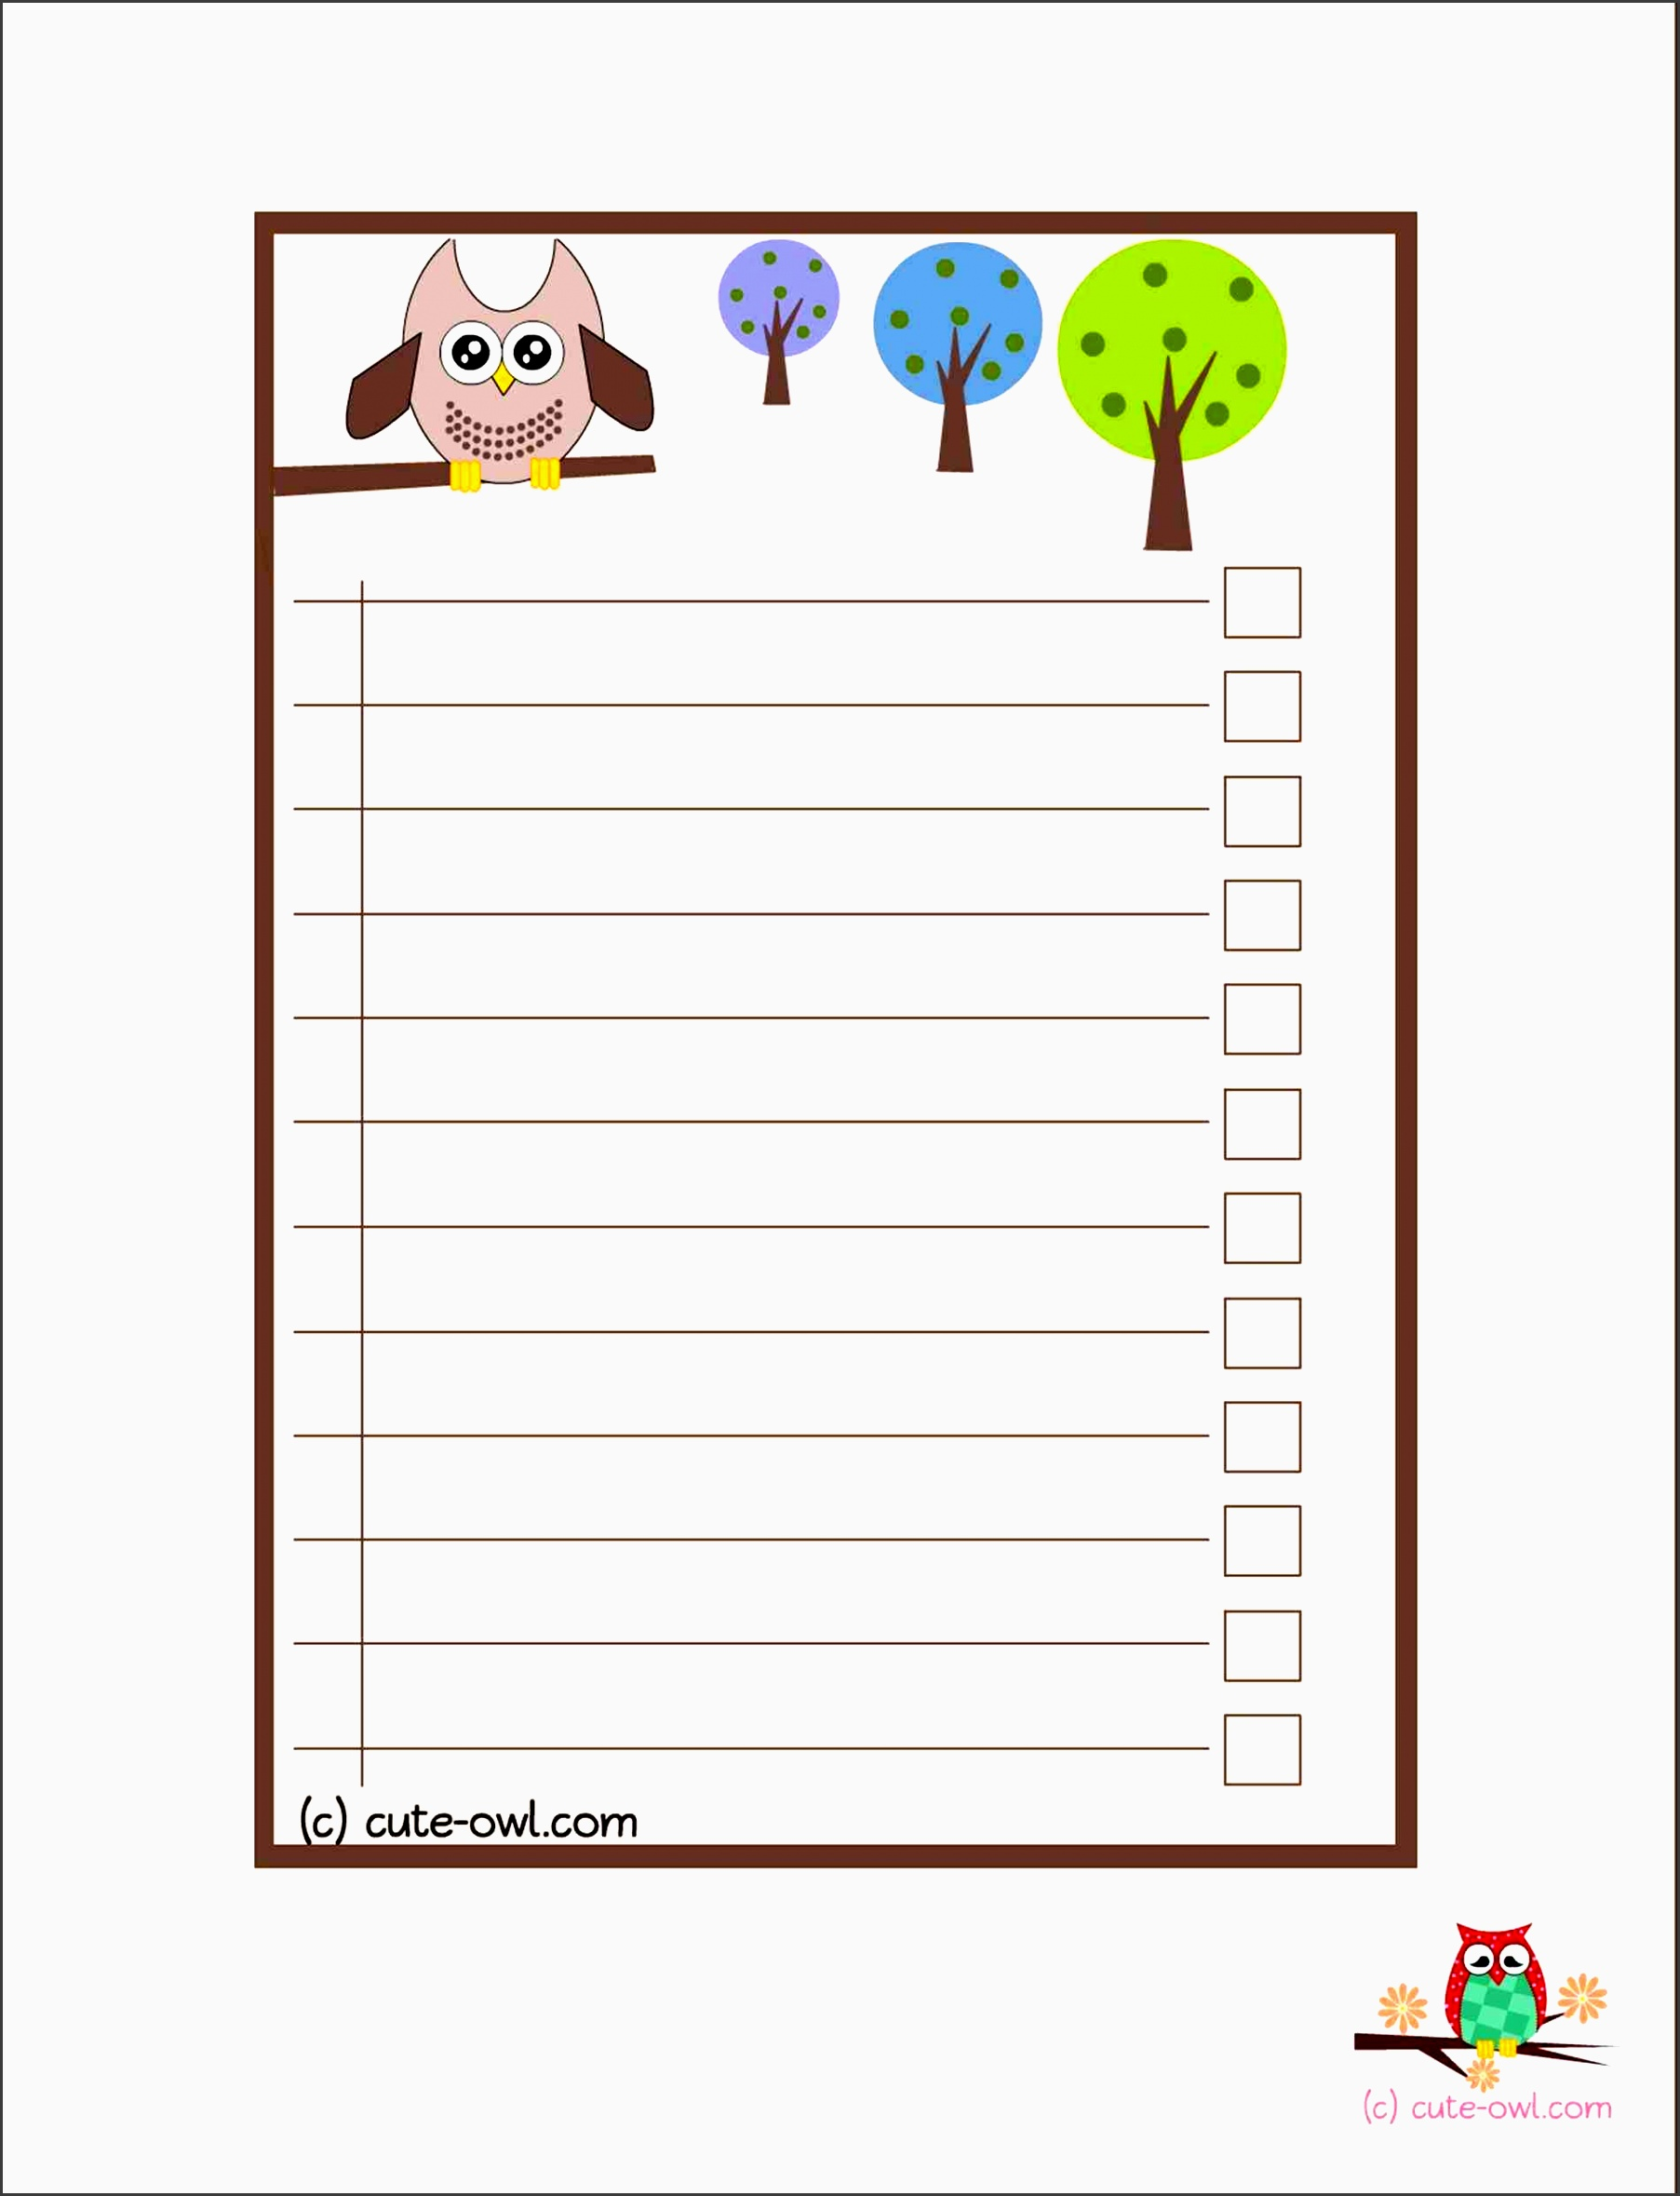 checklist planner shower planning checklist procedure template sample photo event easy living image photo baby shower